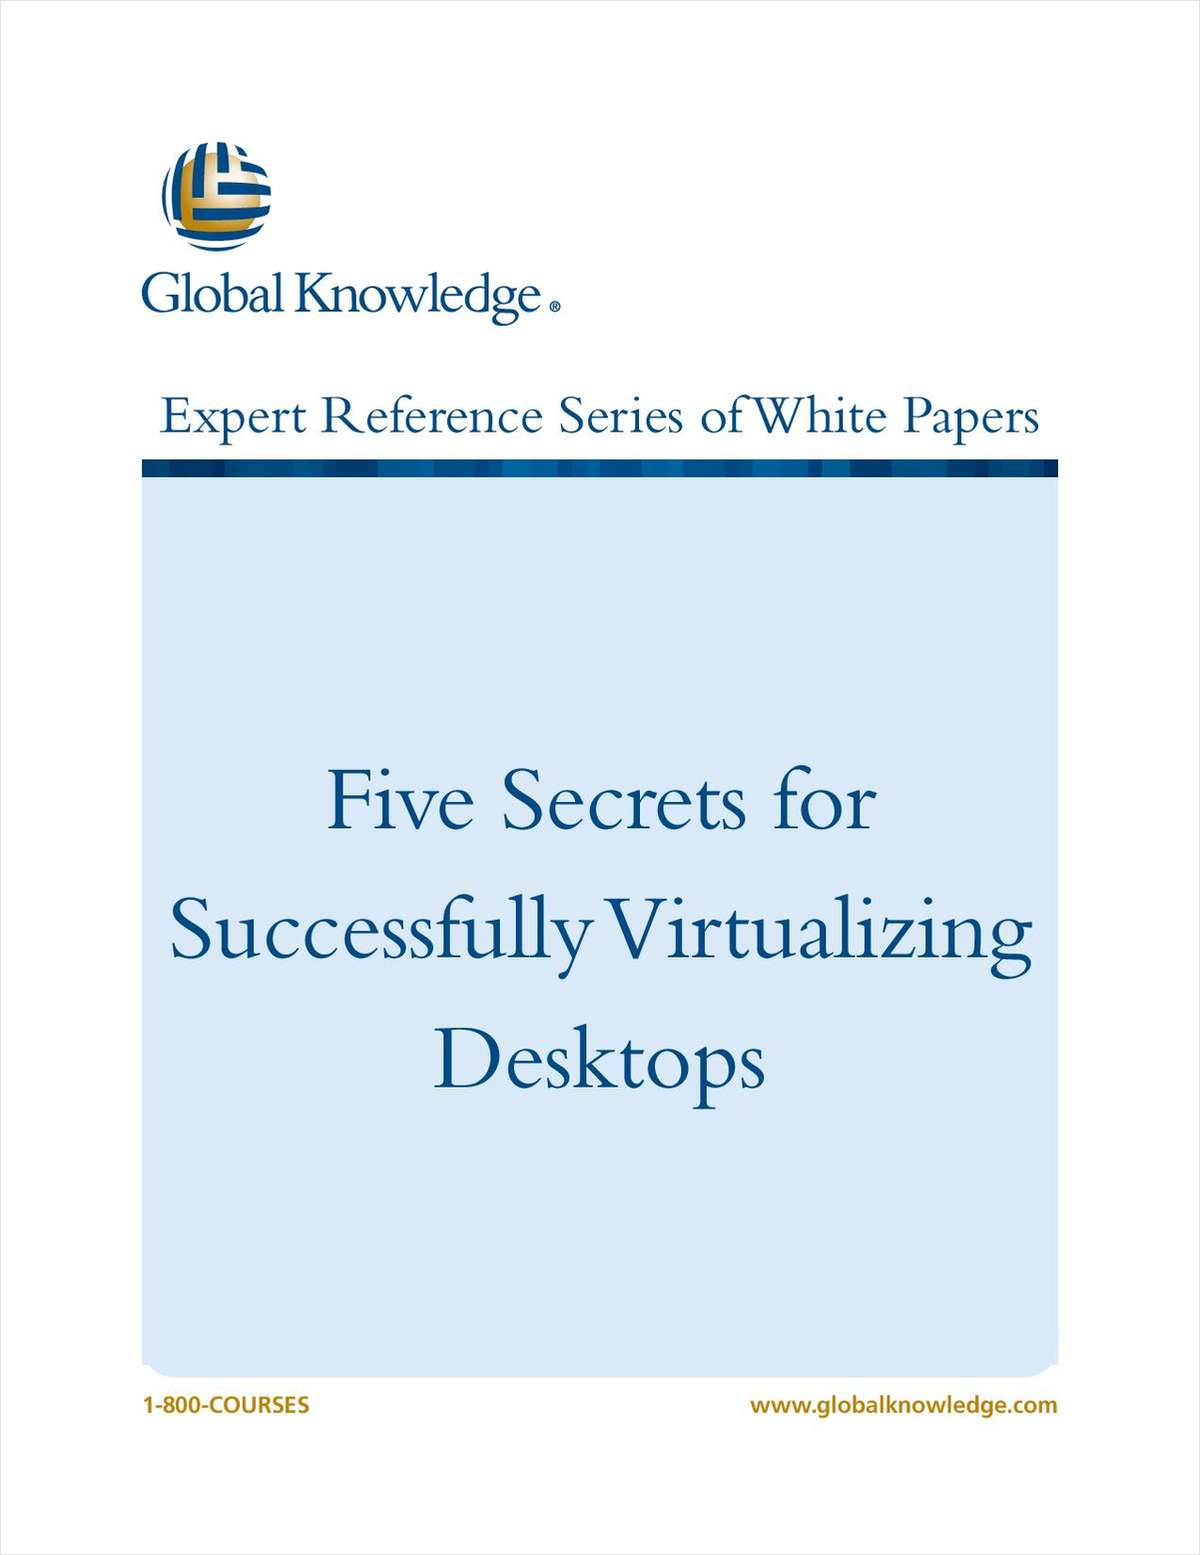 Five Secrets for Successfully Virtualizing Desktops